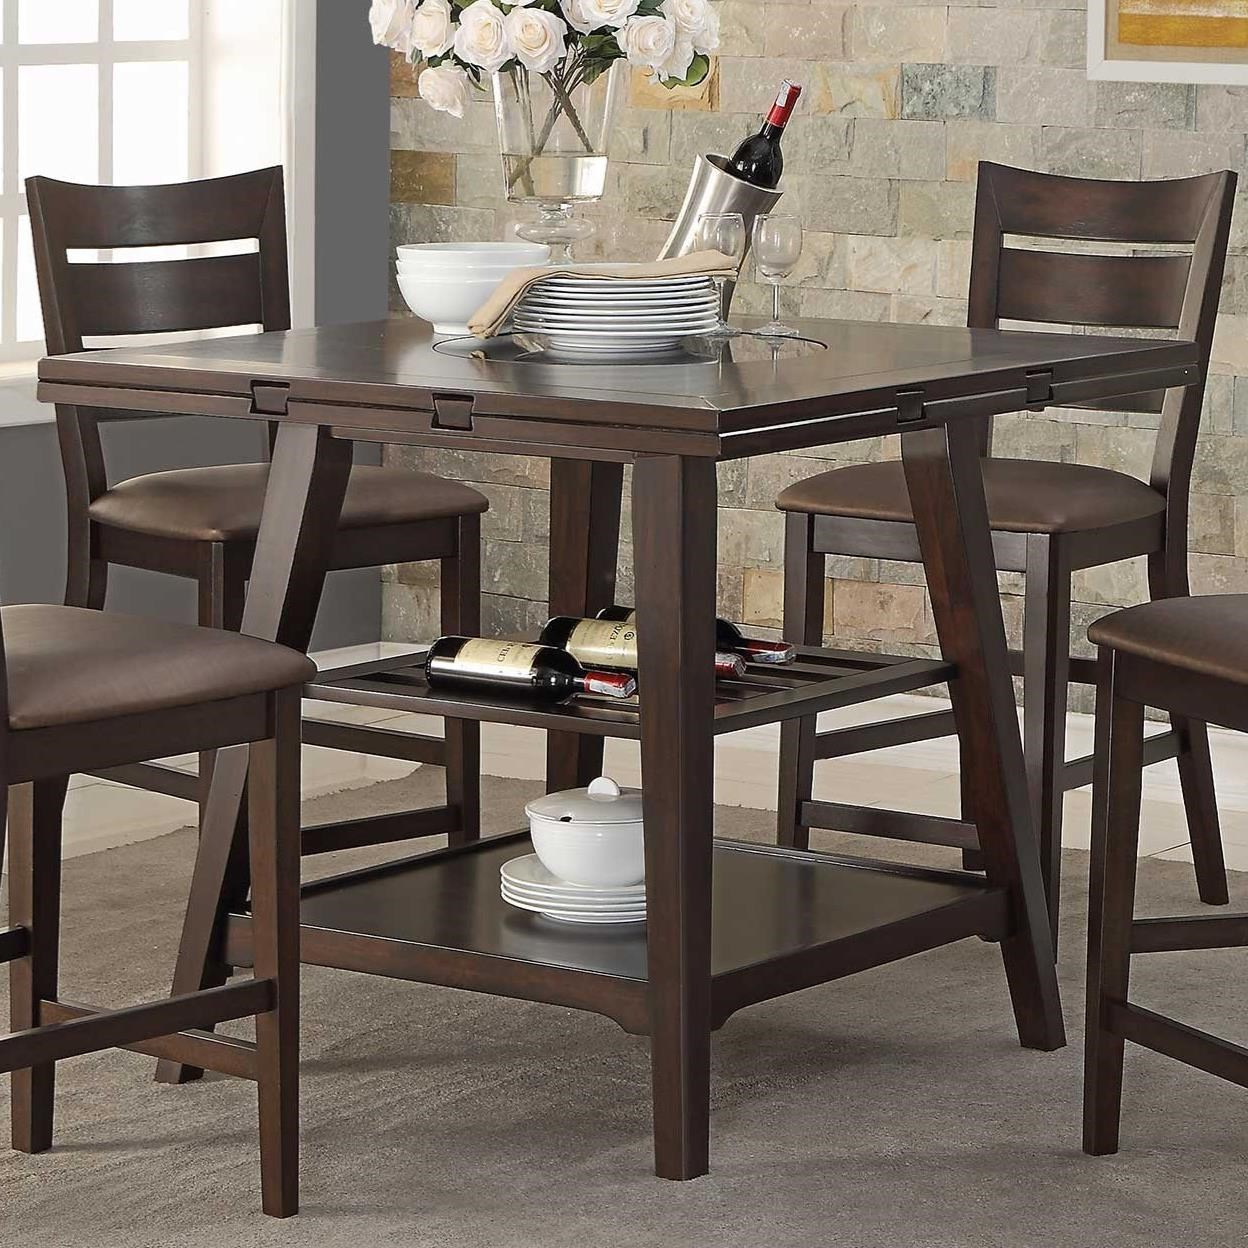 Popular Transitional 4 Seating Drop Leaf Casual Dining Tables Regarding Winners Only Parkside Drop Leaf Counter Height Table With (View 20 of 25)